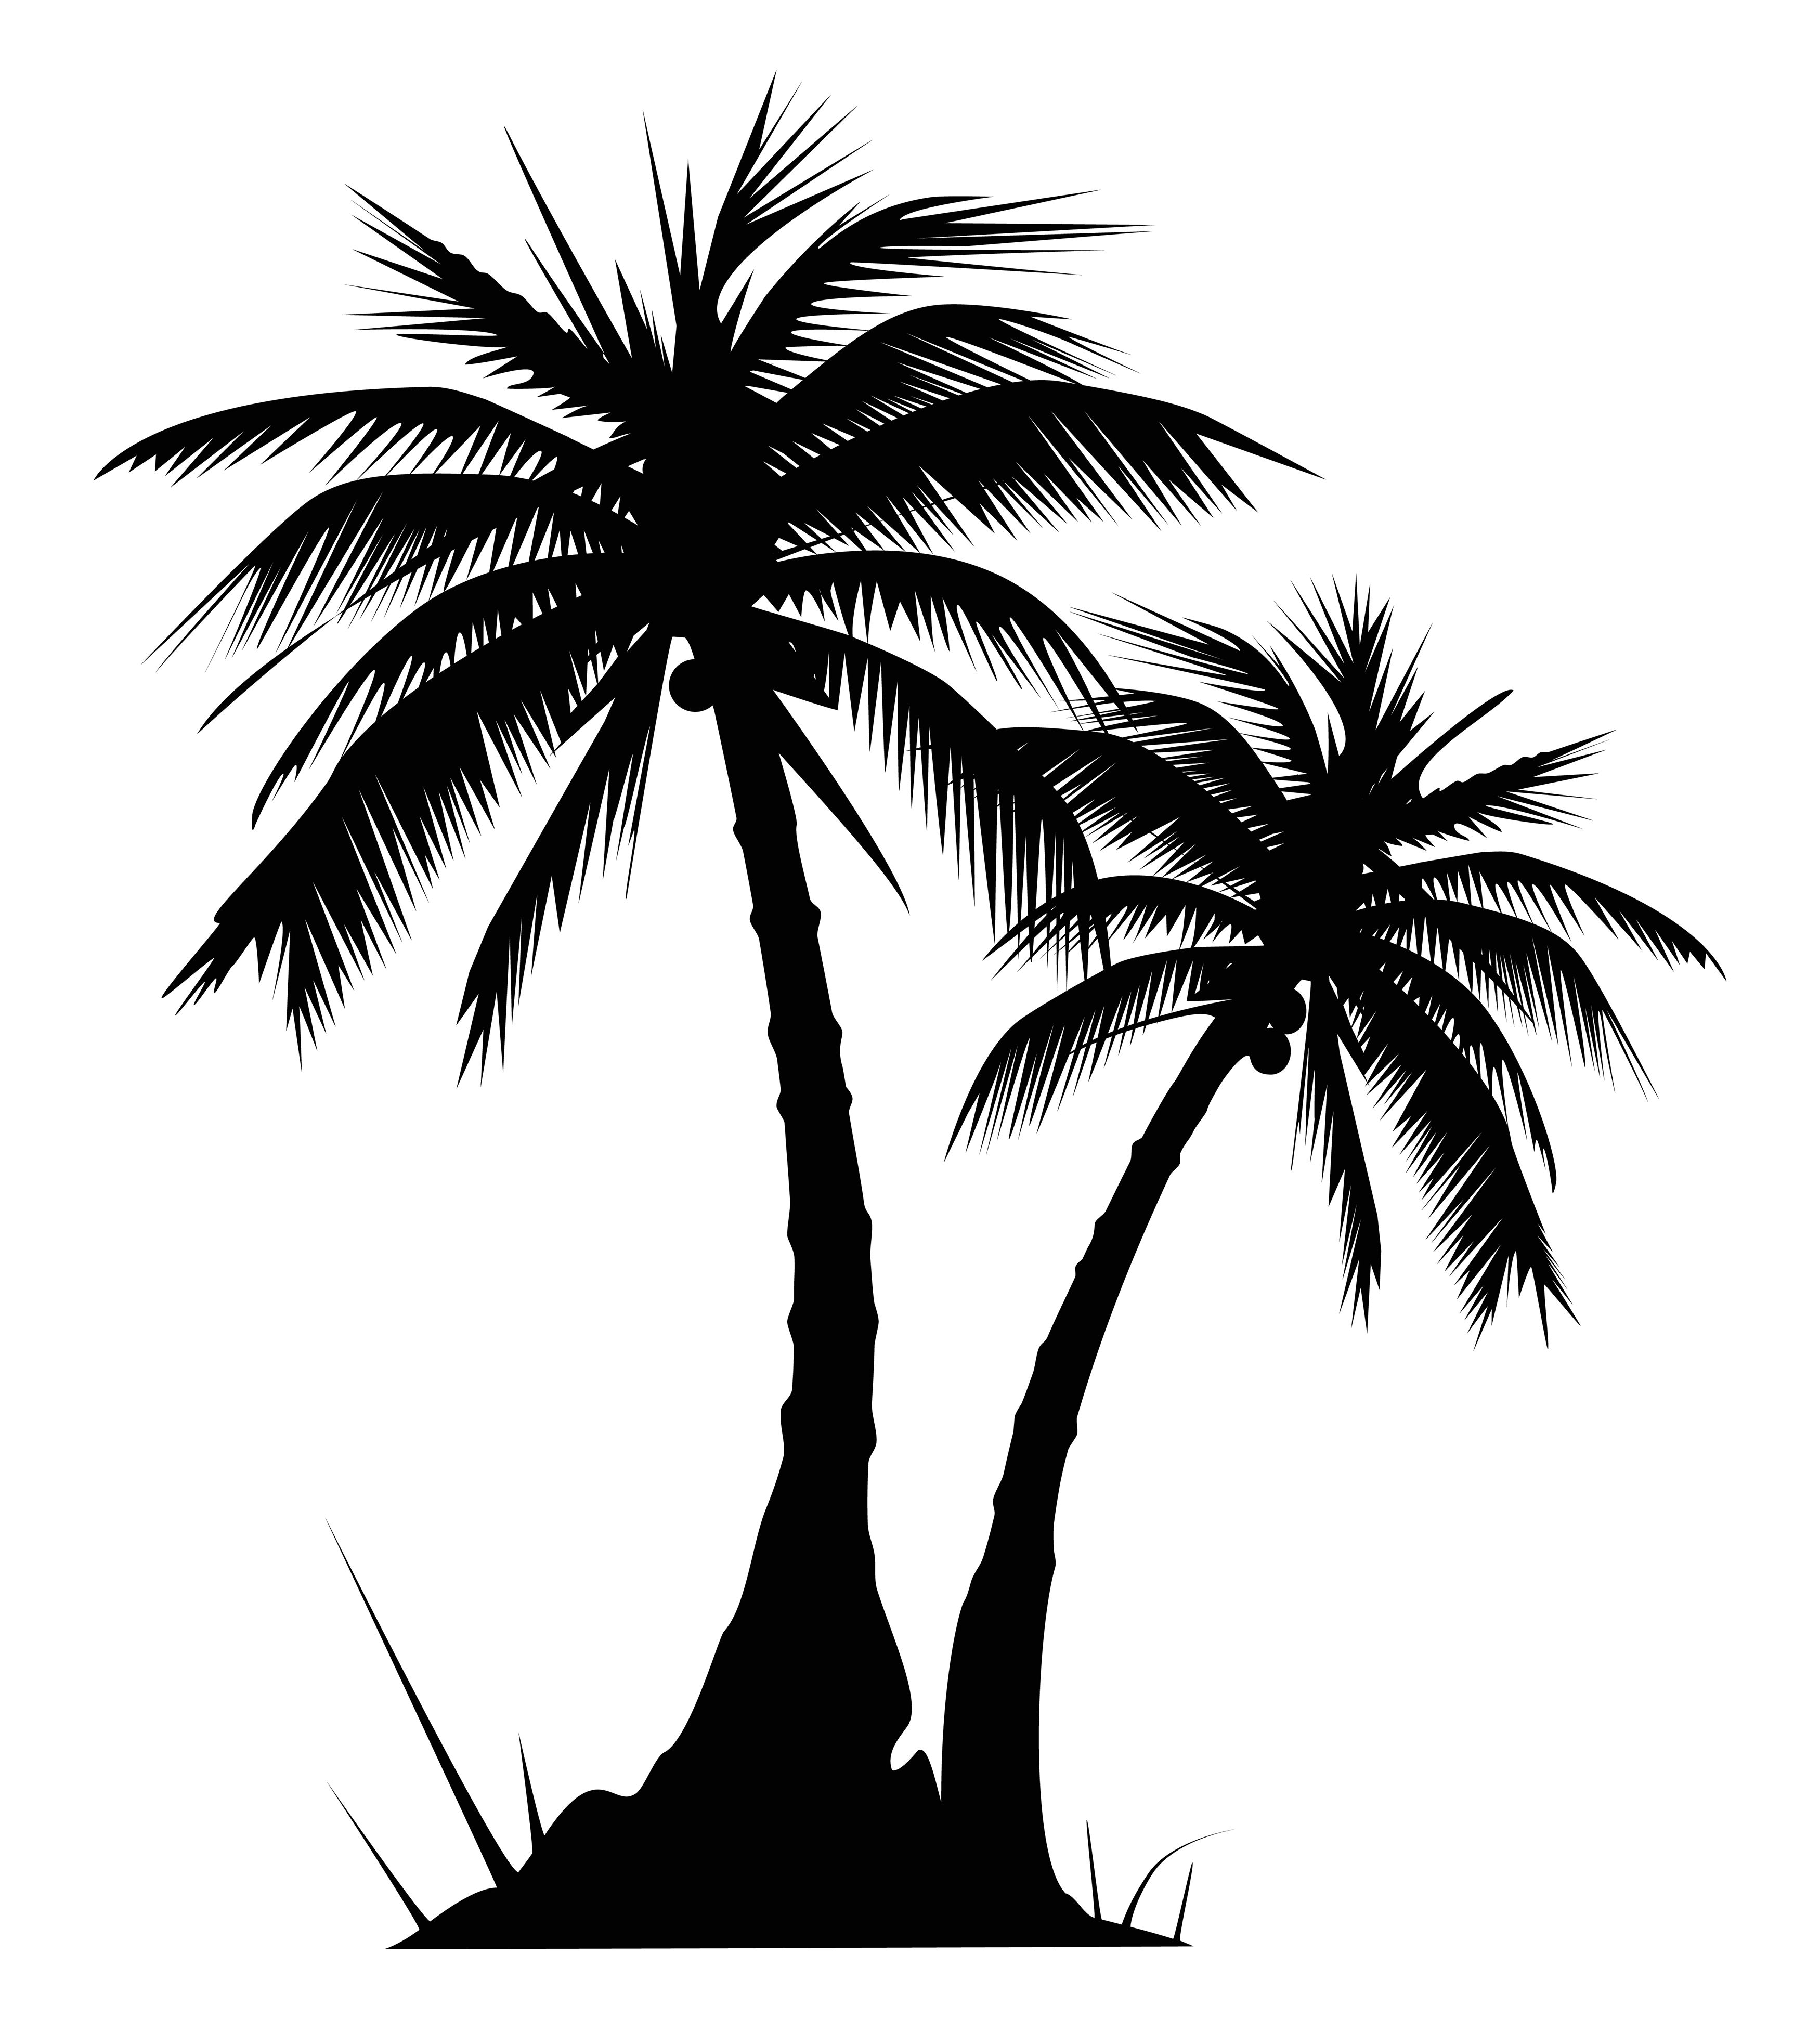 100 clipart palm tree. Clip art black and